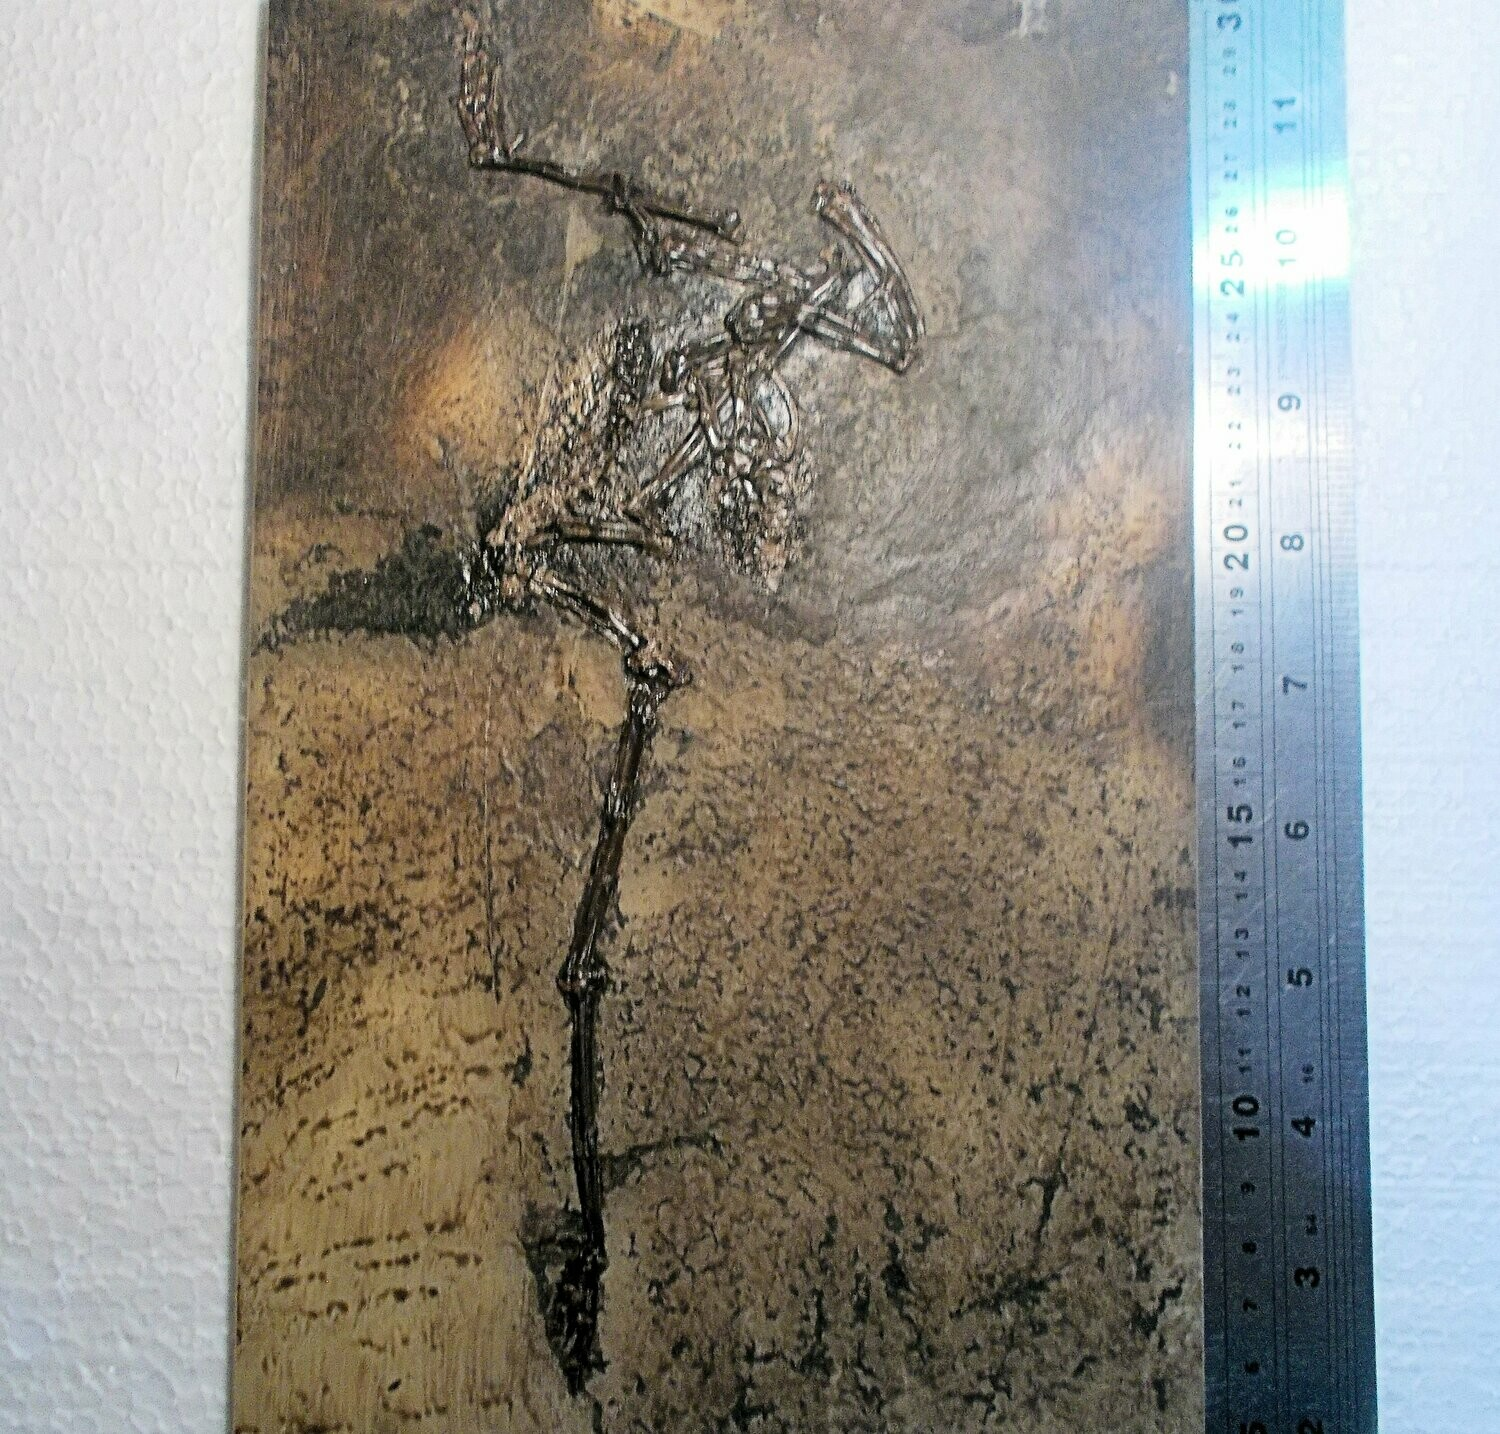 Fine and rare near-complete bird: Messelornis cristata; excellent detail of limbs with digits and claws, and wing bones !